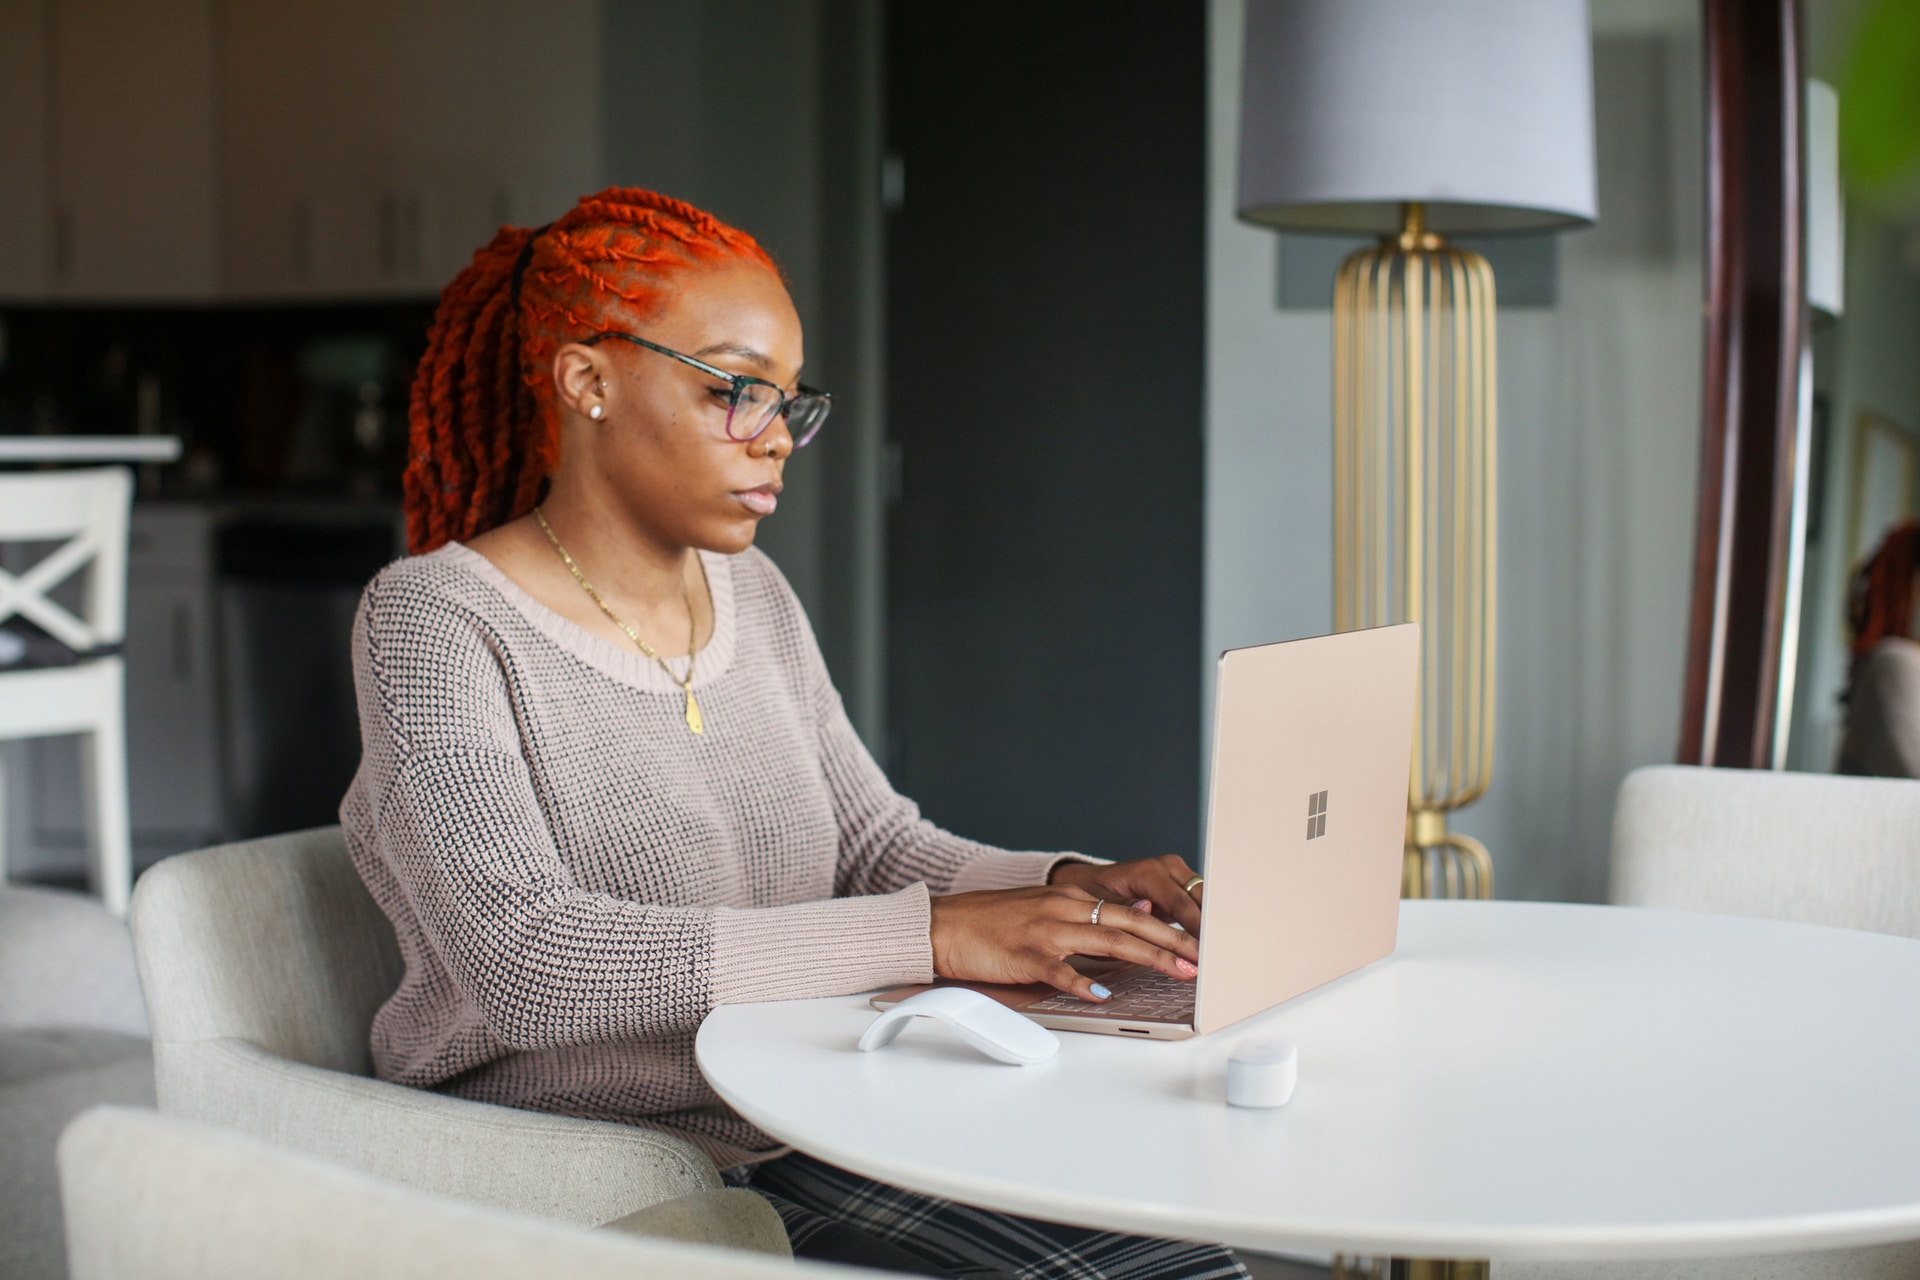 woman in gray knit sweater using Surface computer